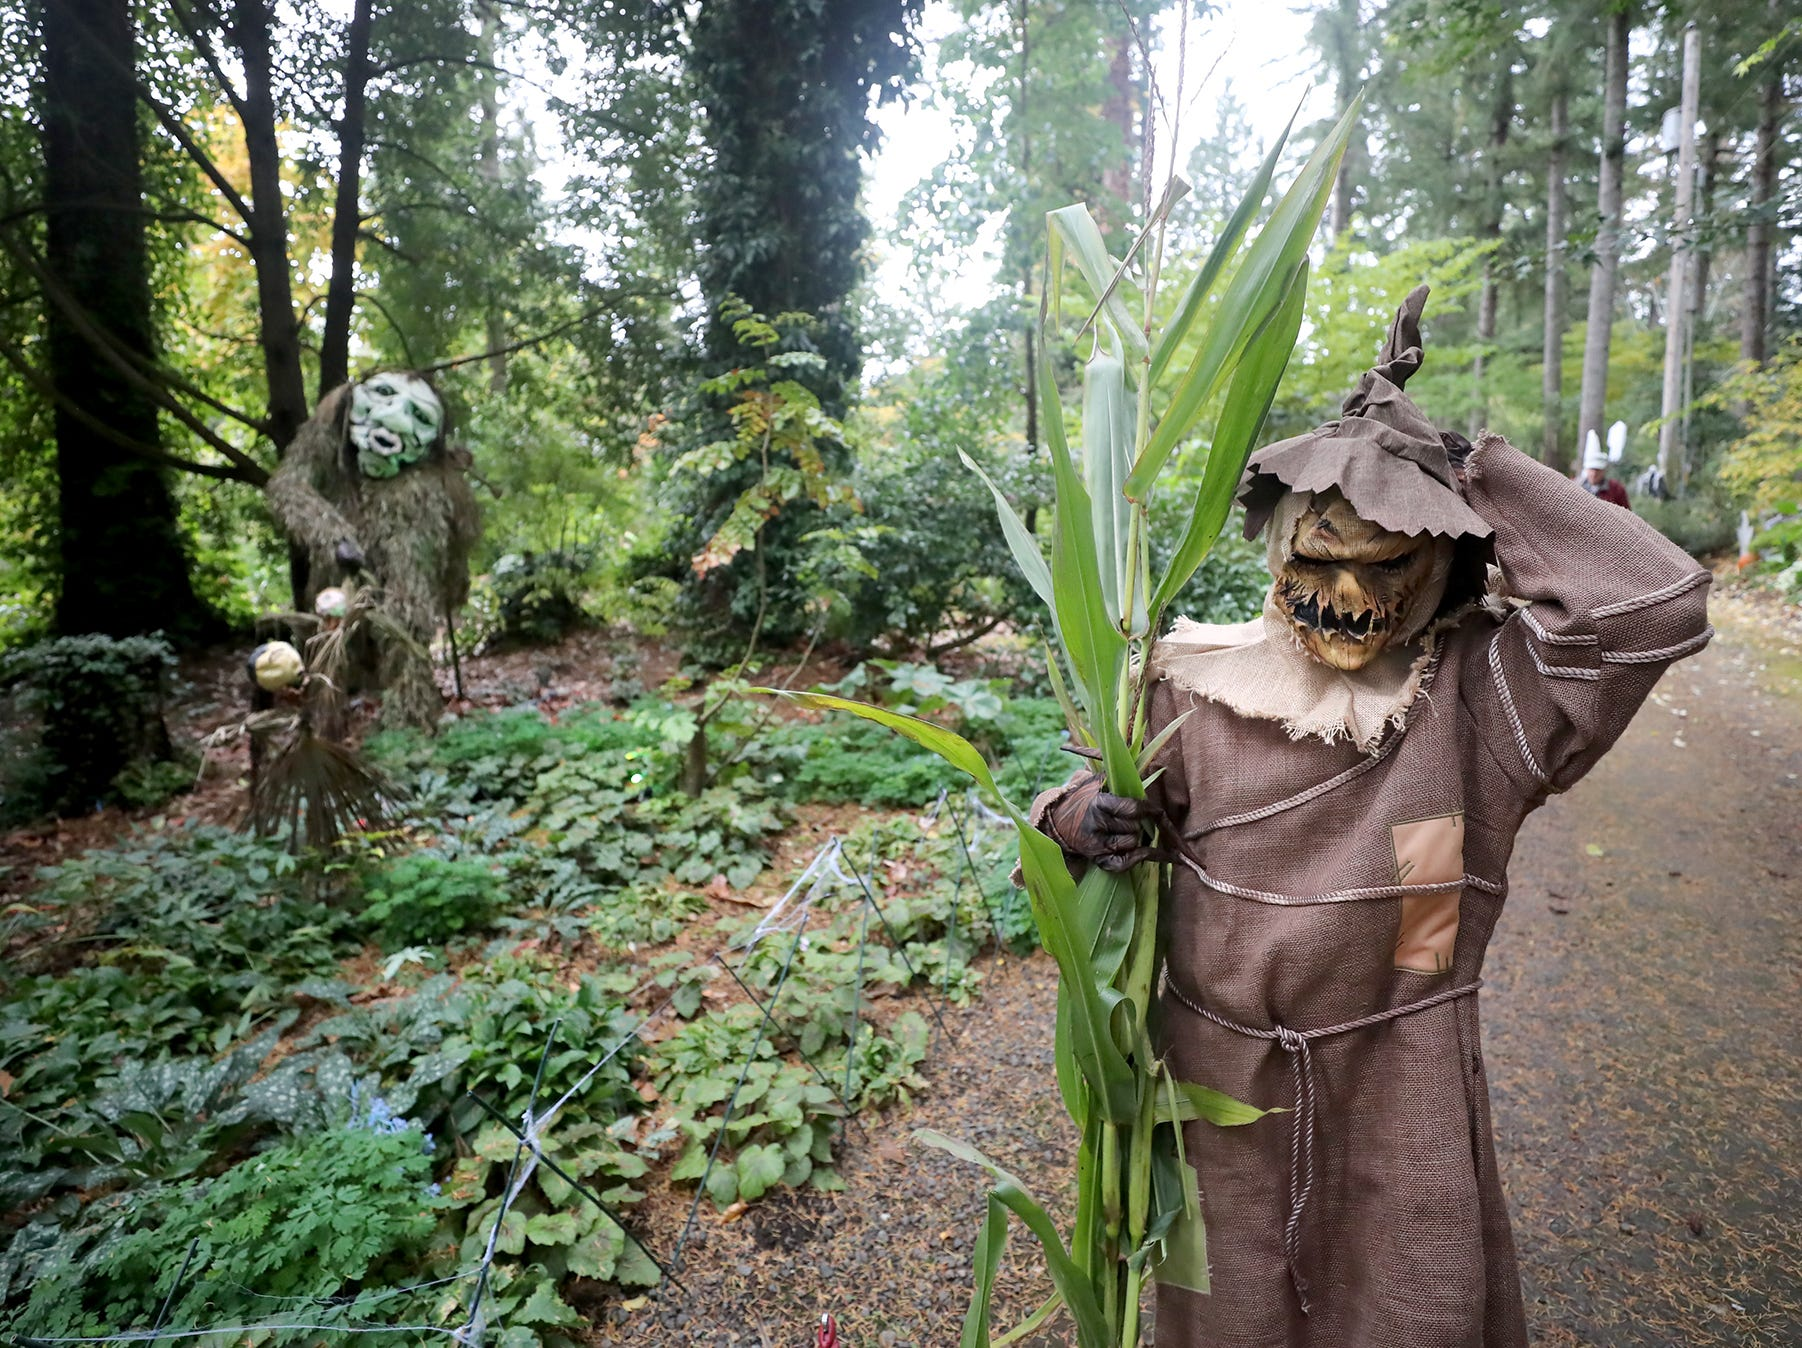 Rene Wyatt gets her scarecrow costume on at the Haunted Heronswood 2018 in Kingston was Friday and Saturday, October,26-27. The second annual garden halloween charters tour featured some SÕKlallam folk stories.